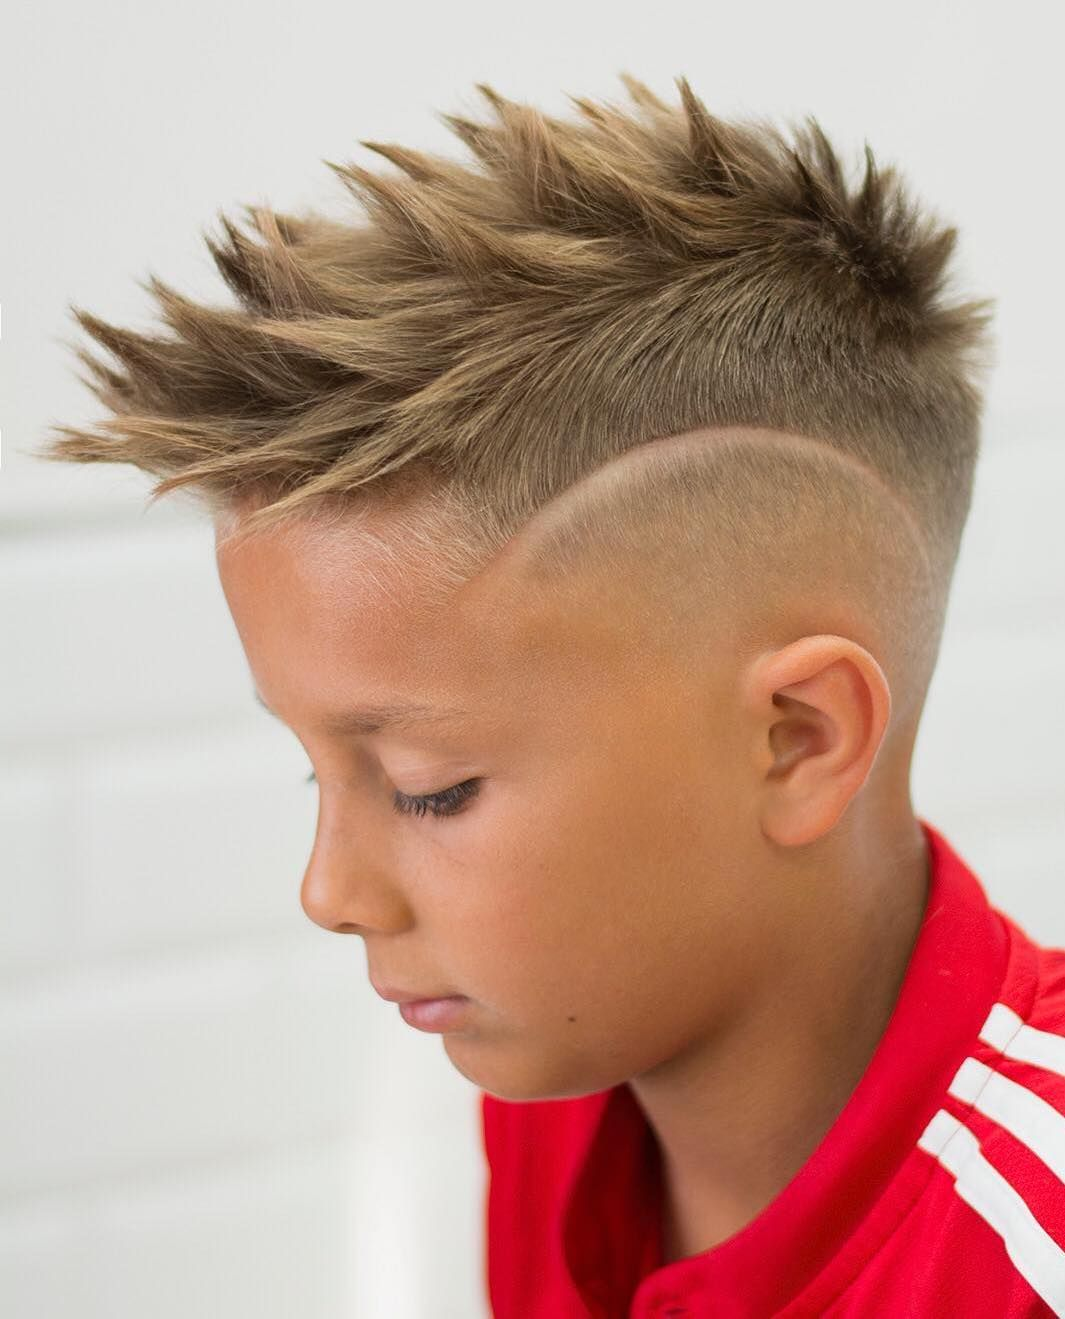 90 Cool Haircuts For Kids For 2020 Soccer Hairstyles Boy Haircuts Short Boy Hairstyles